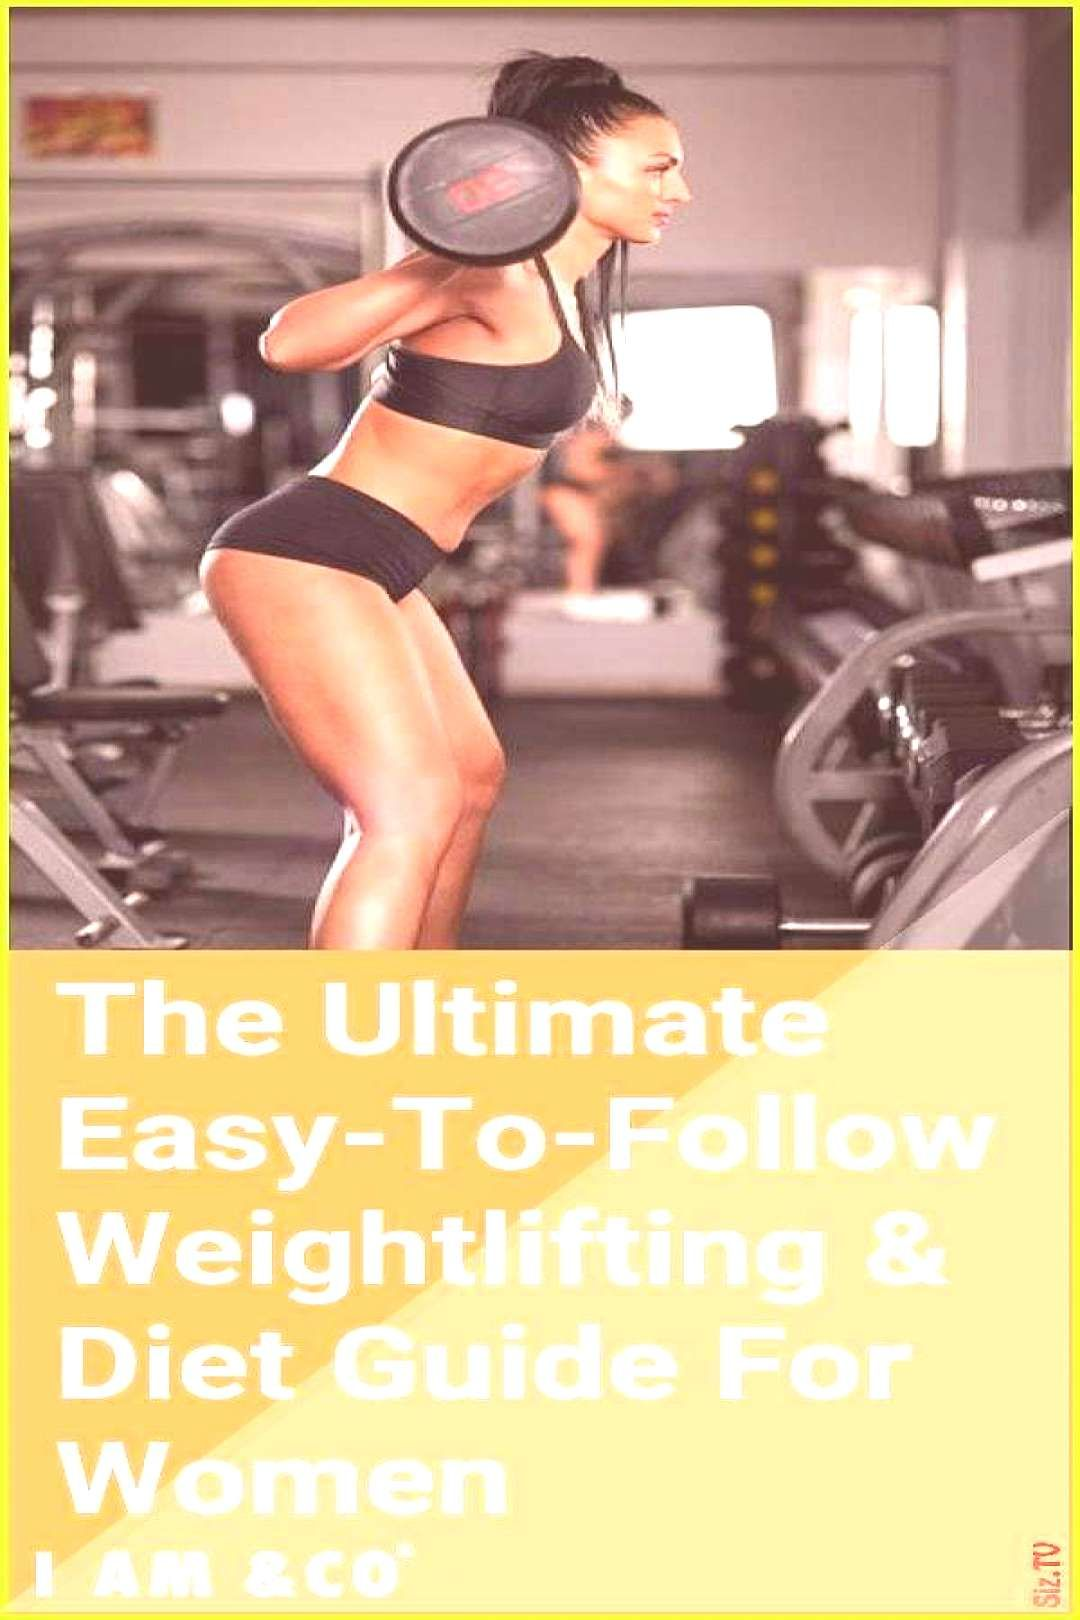 #weightlifting #beginners #ultimate #training #iamandco #fitness #ultima #hellip #health #guide #nbs...